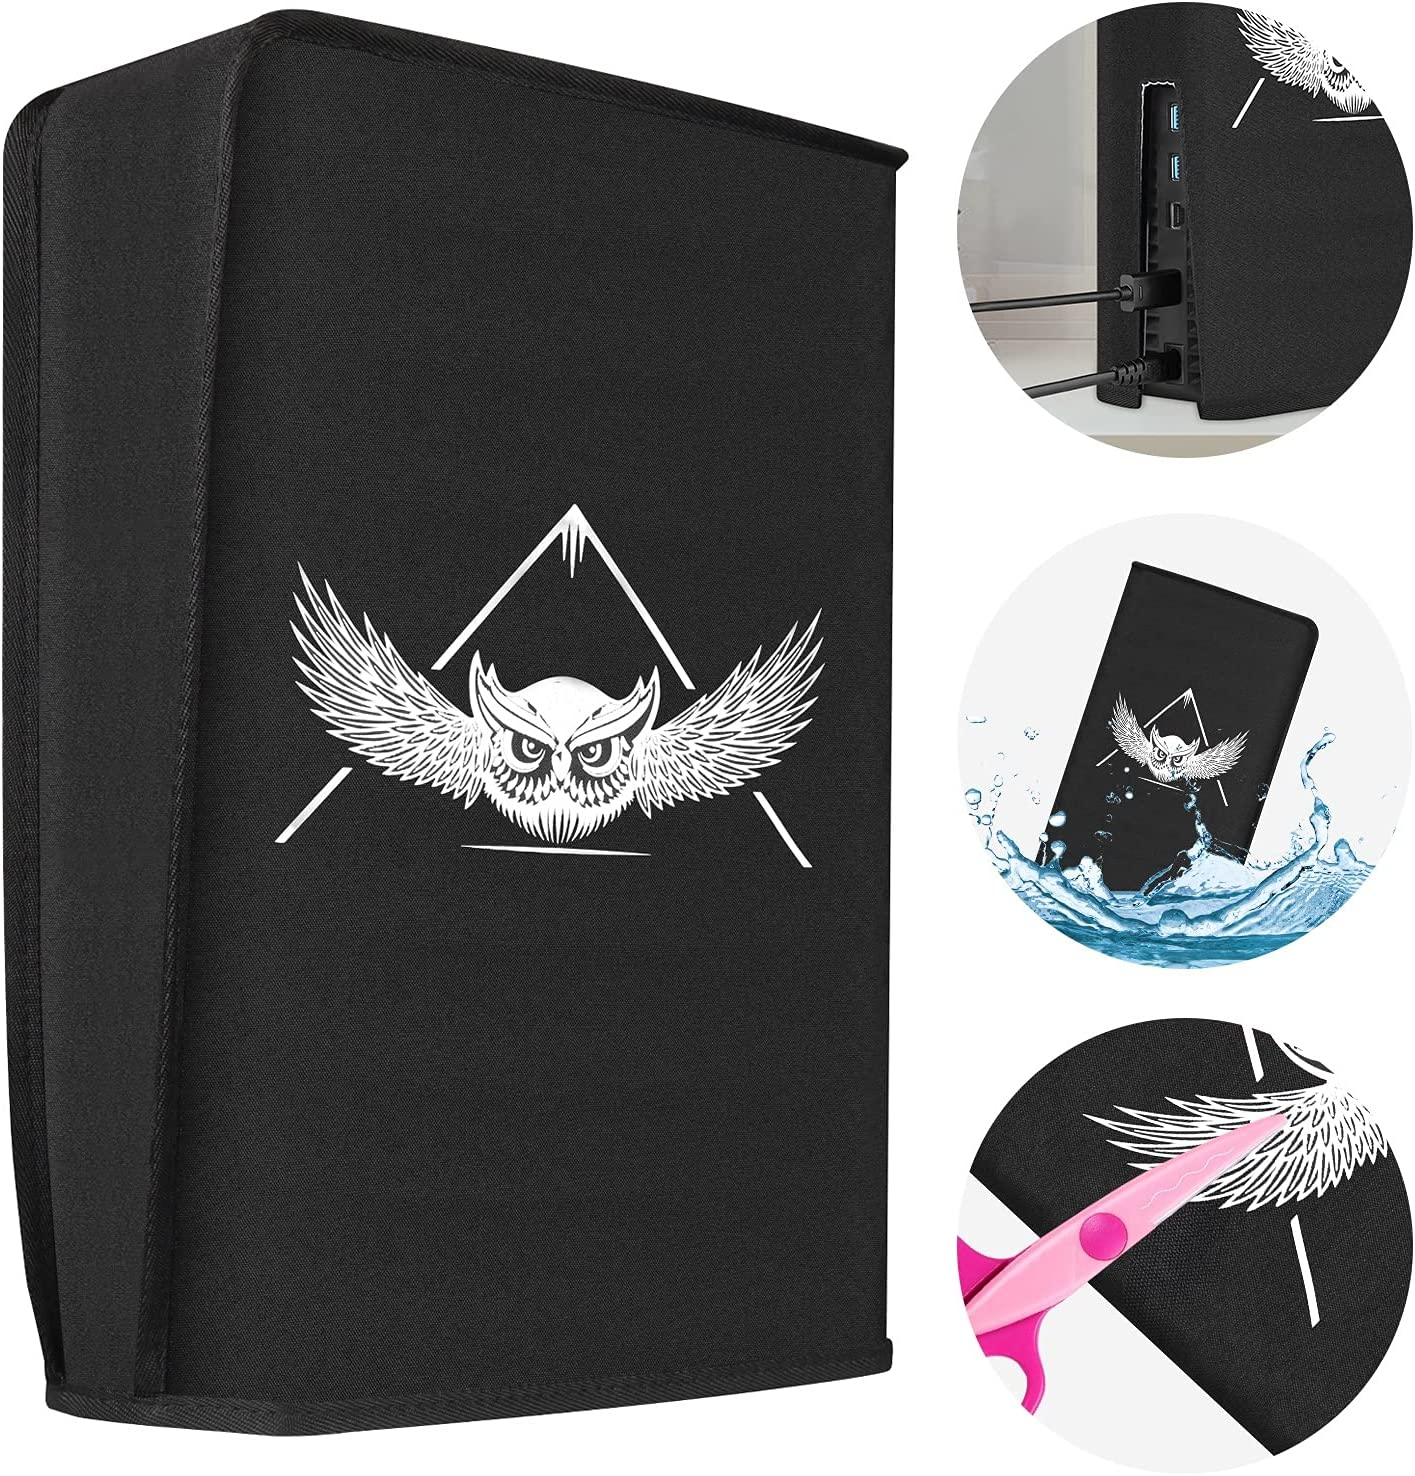 Max 52% OFF MASiKEN Dust Cover for Max 41% OFF PS5 Digital Edition Waterproof and Disc